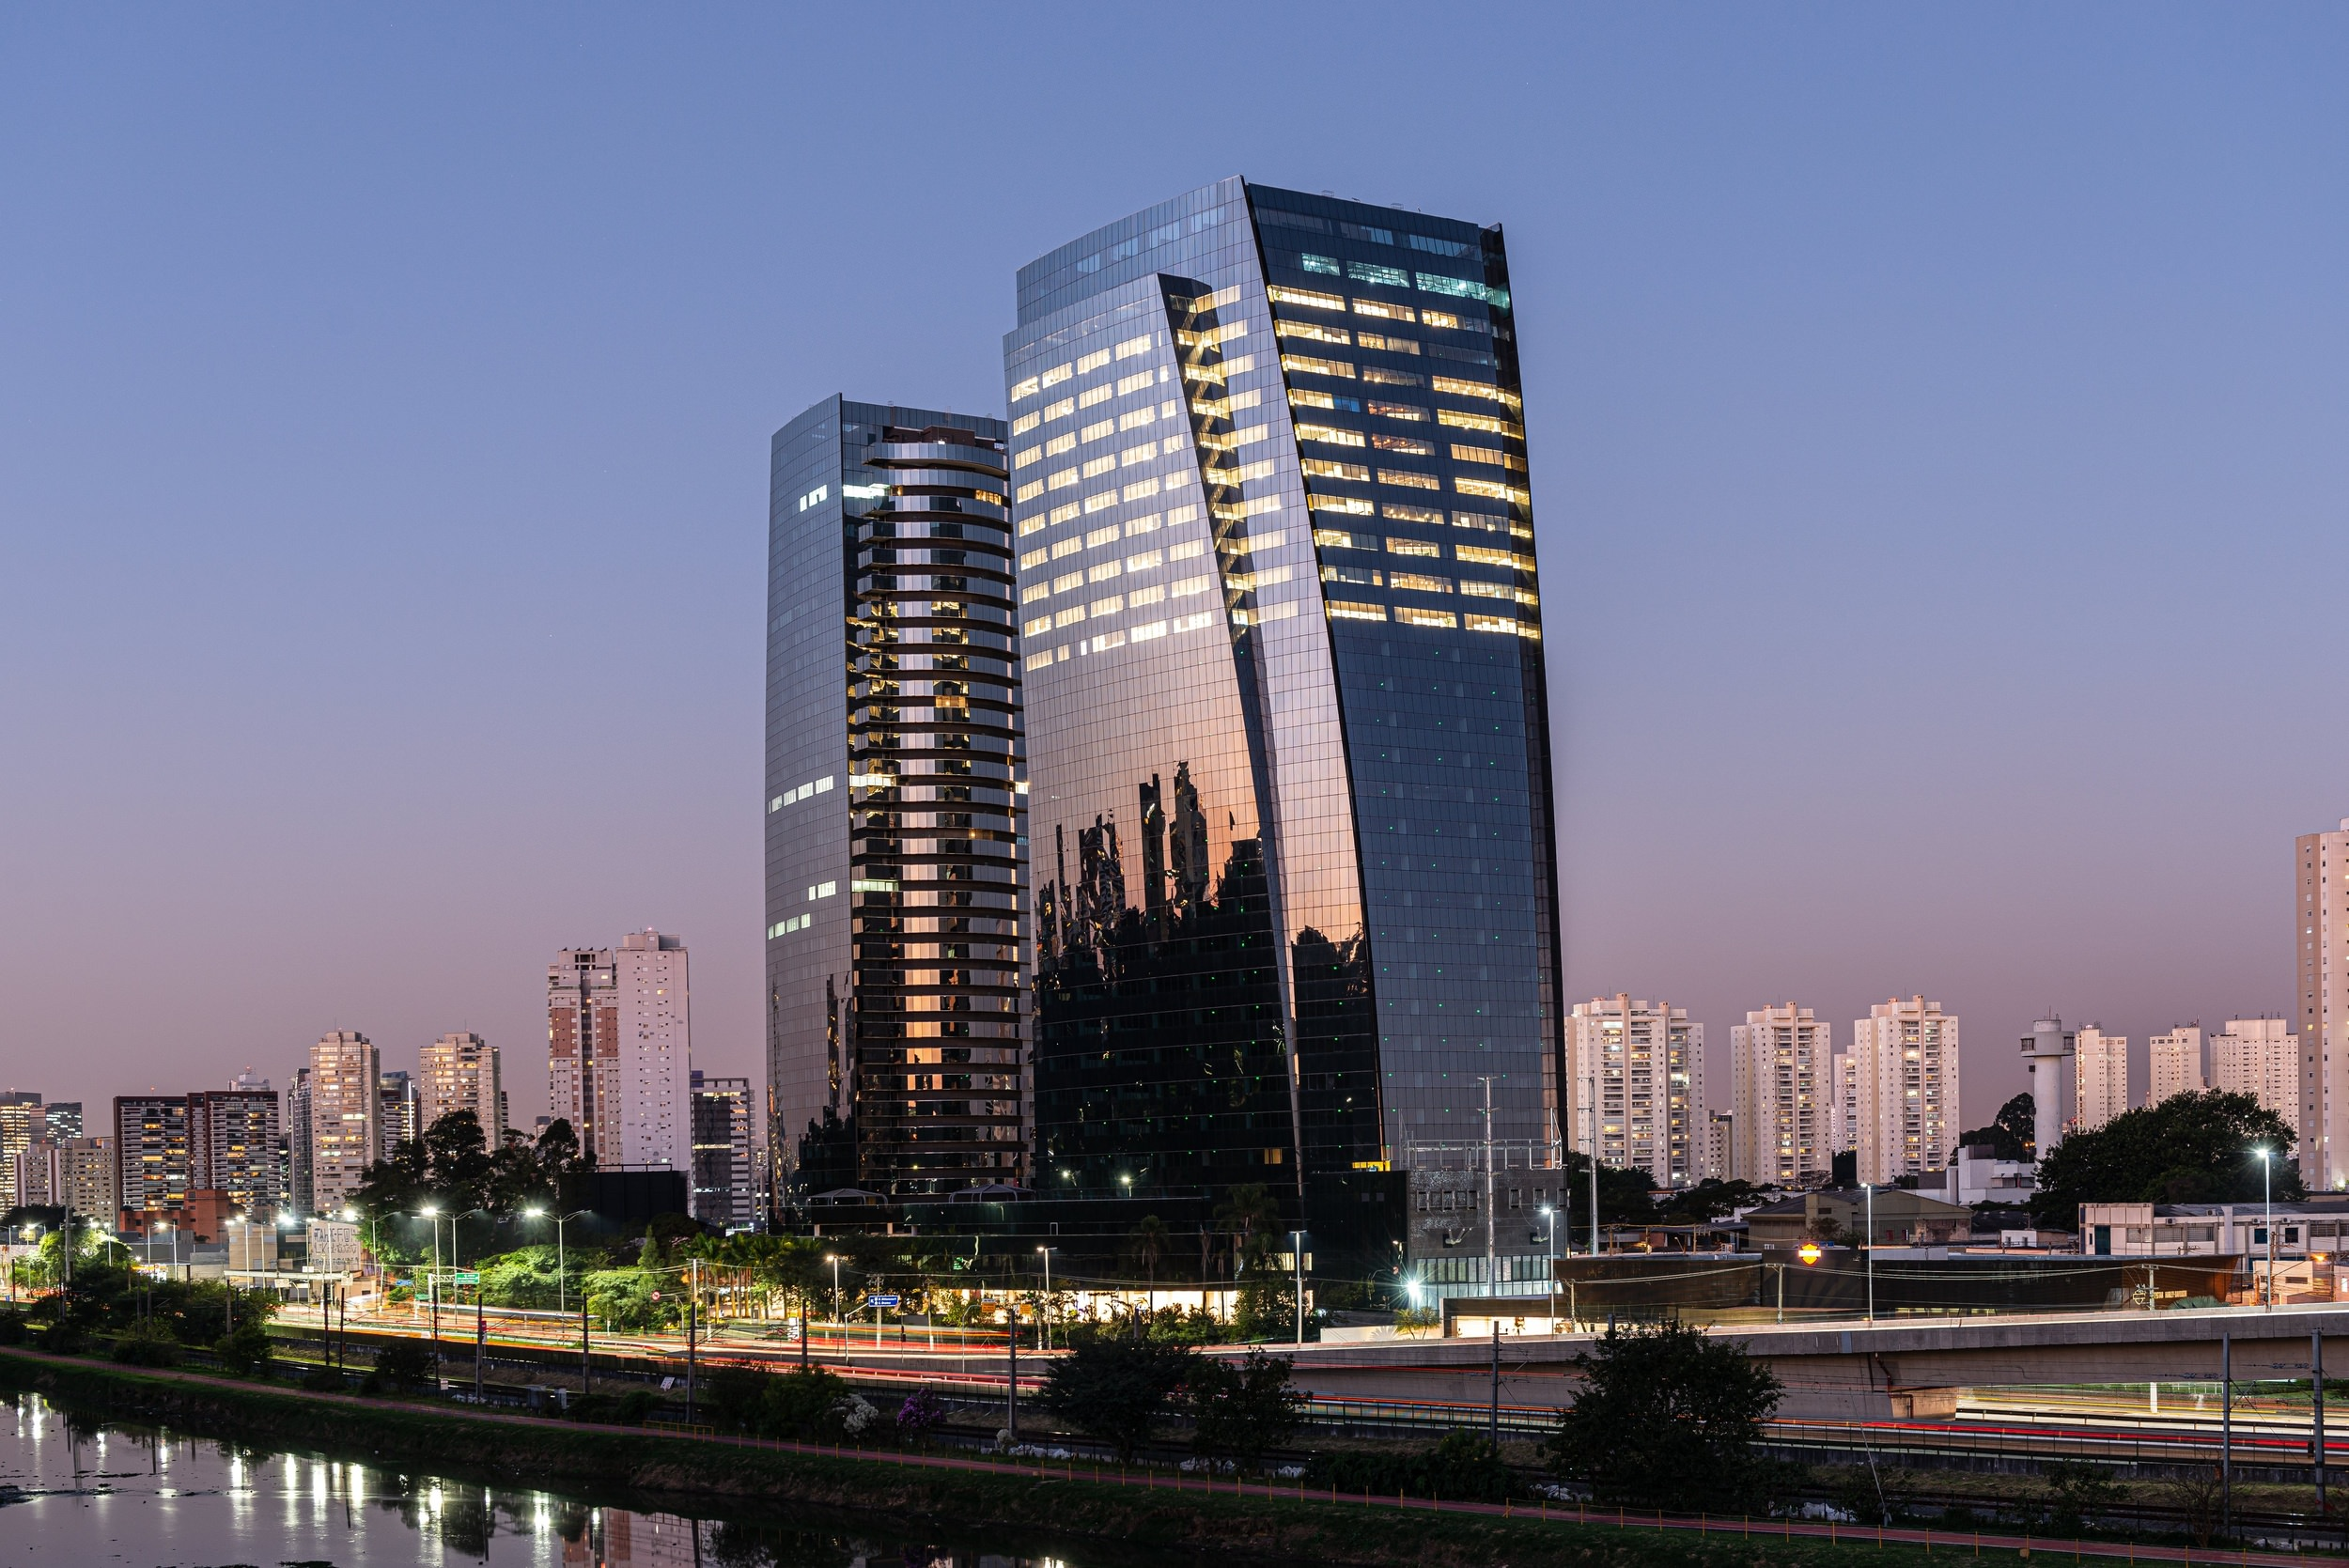 Two modern glass and steel towers that are curved and alongside a river and have the lights turned o